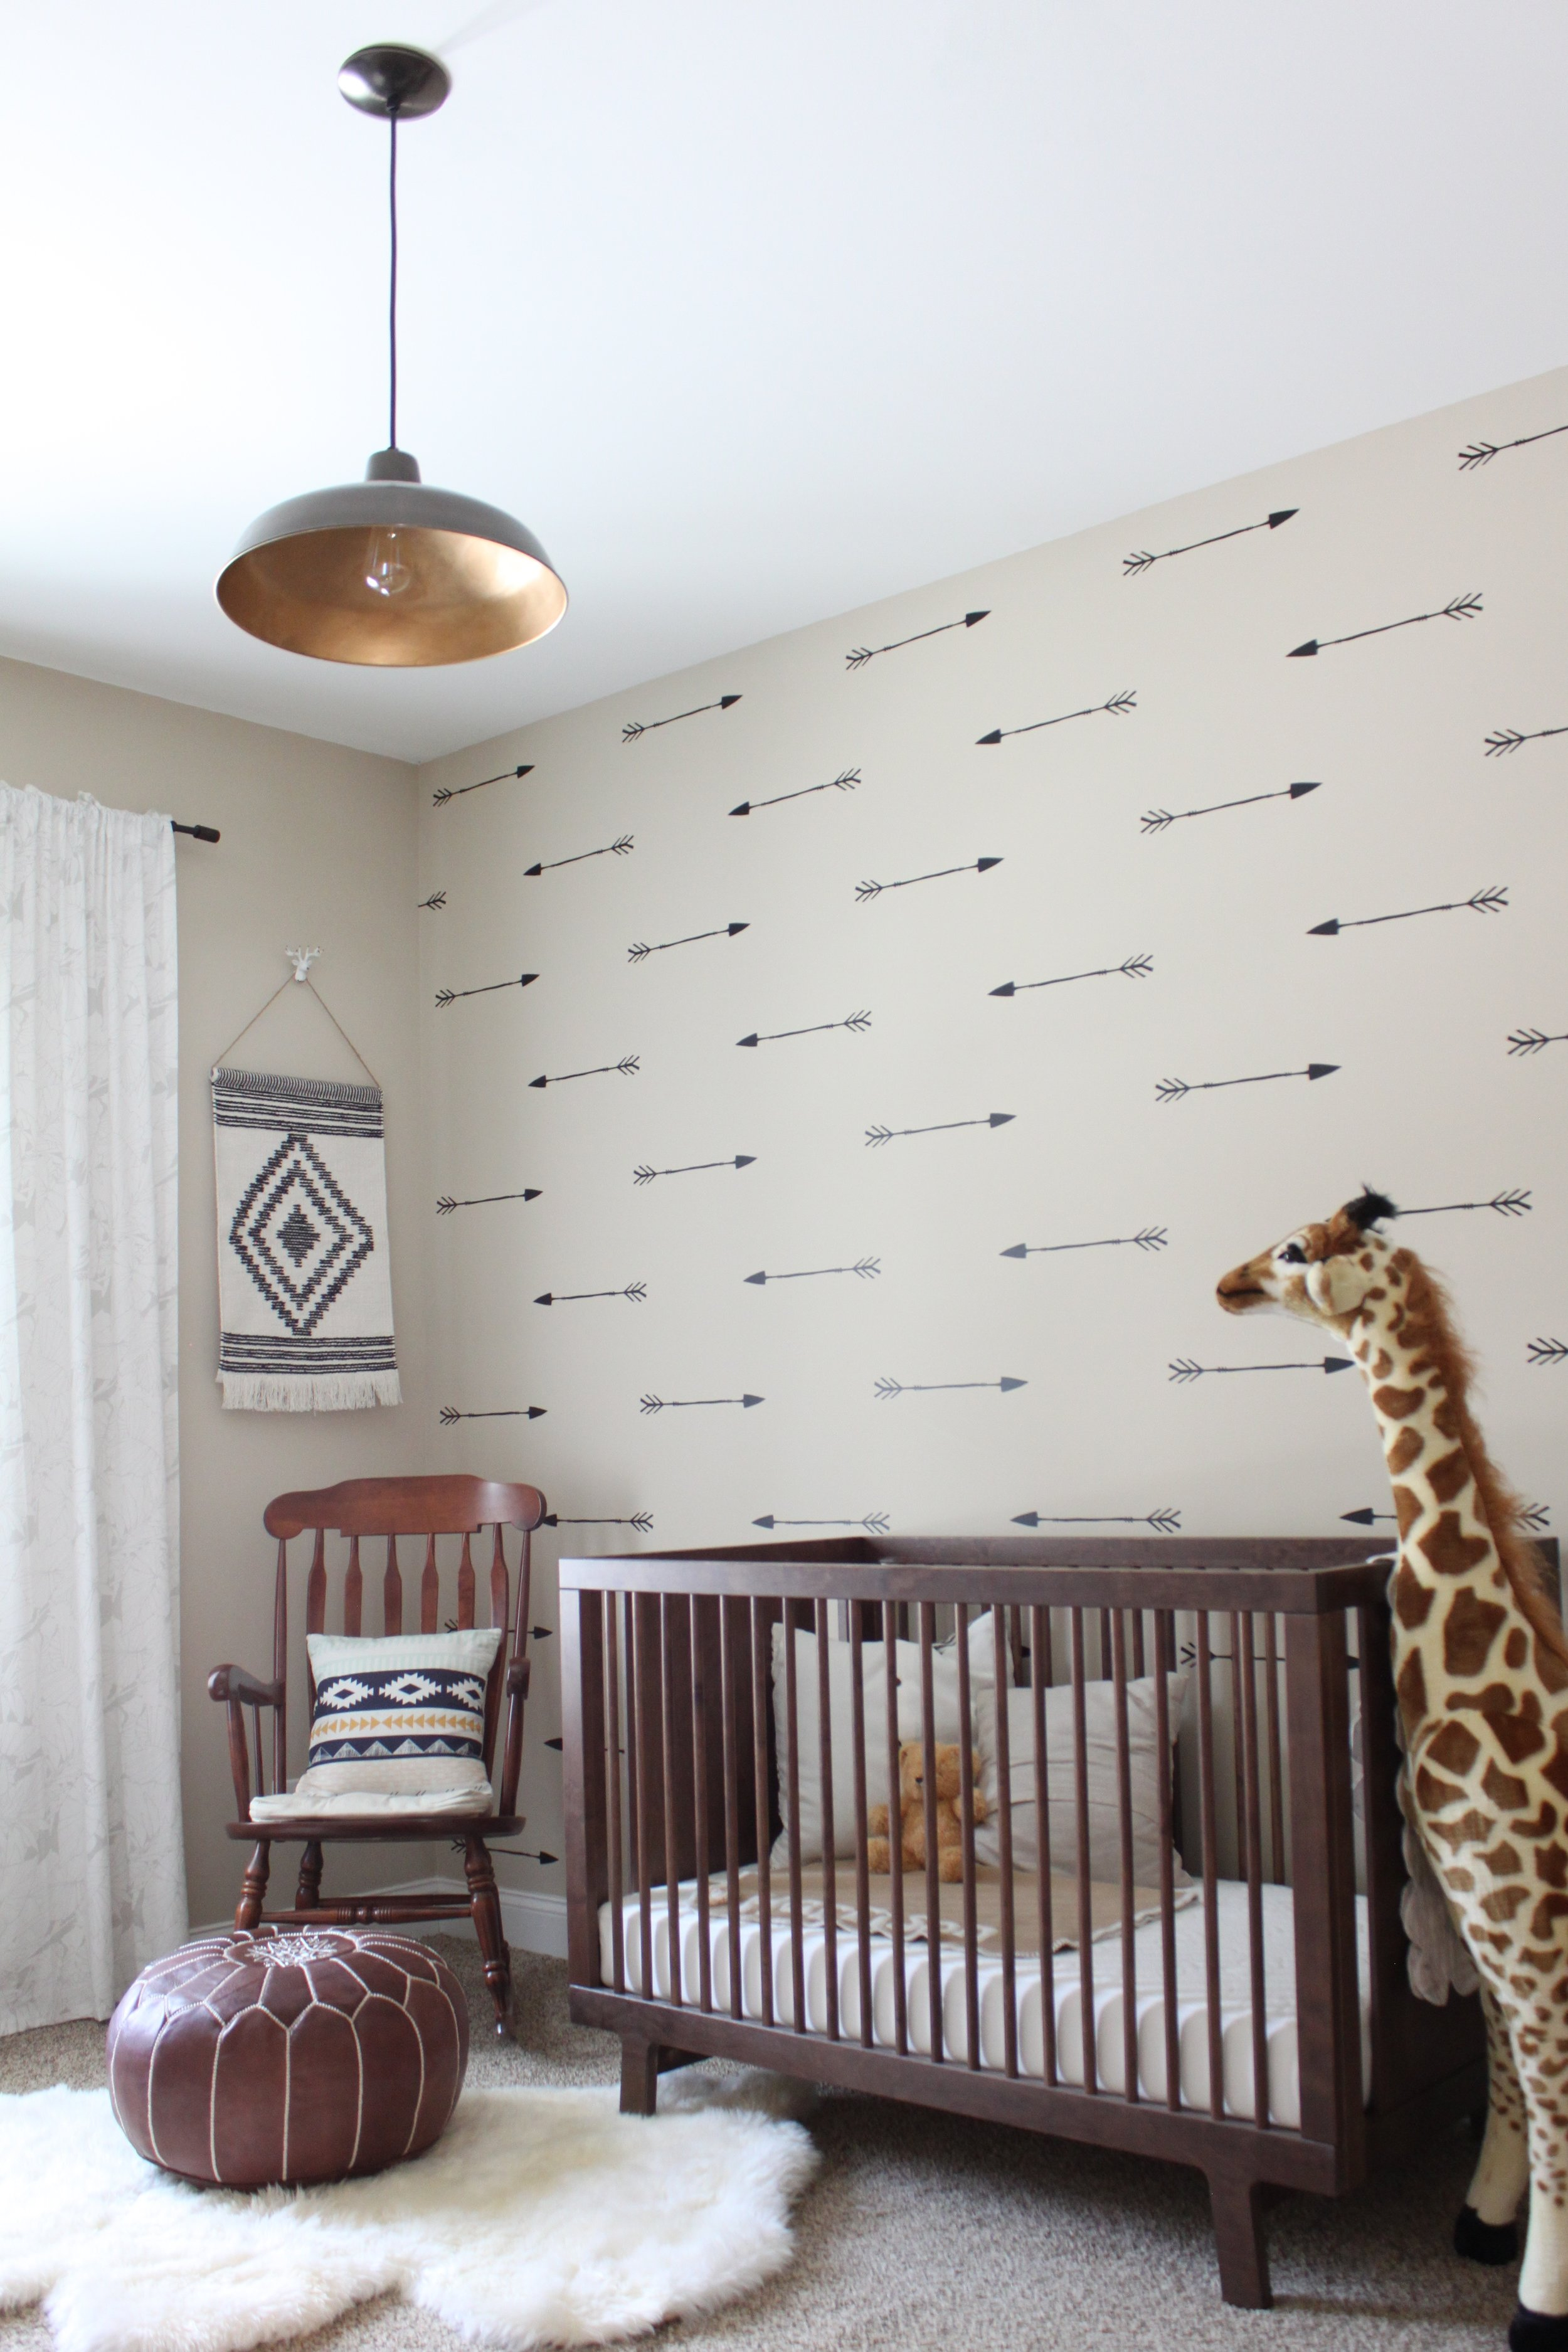 Nursery with wood crib, accent wall, hanging light fixture